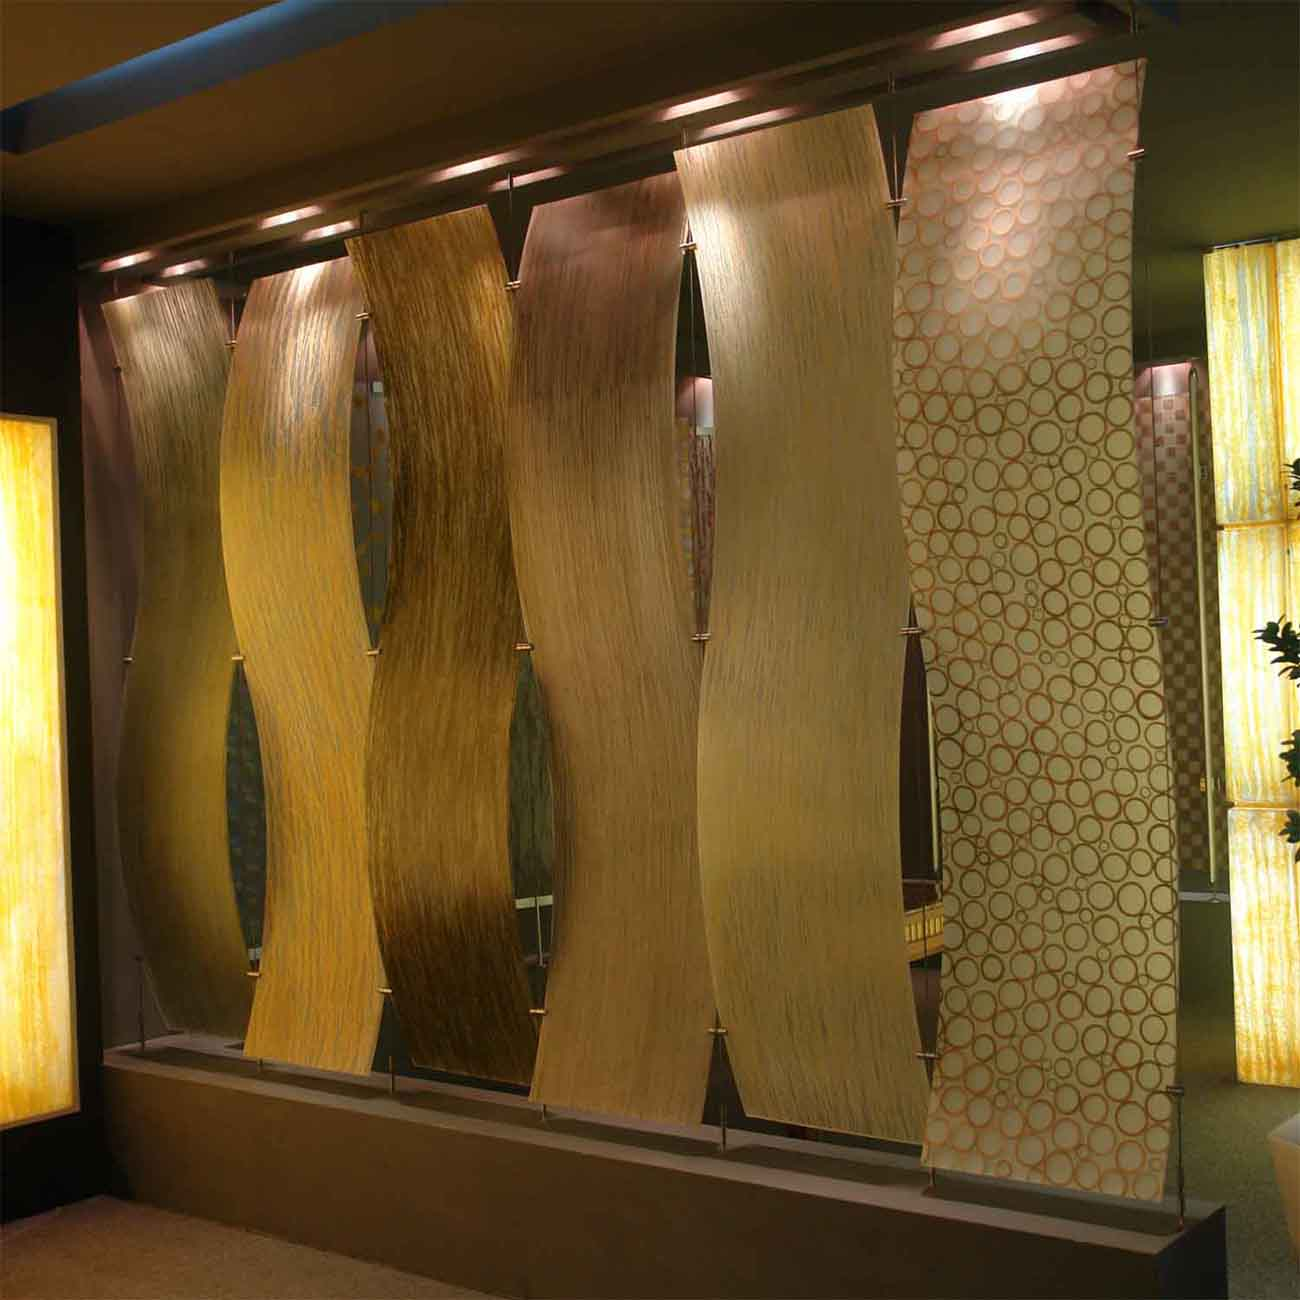 The Shopping Online Idee Decoration Interieur